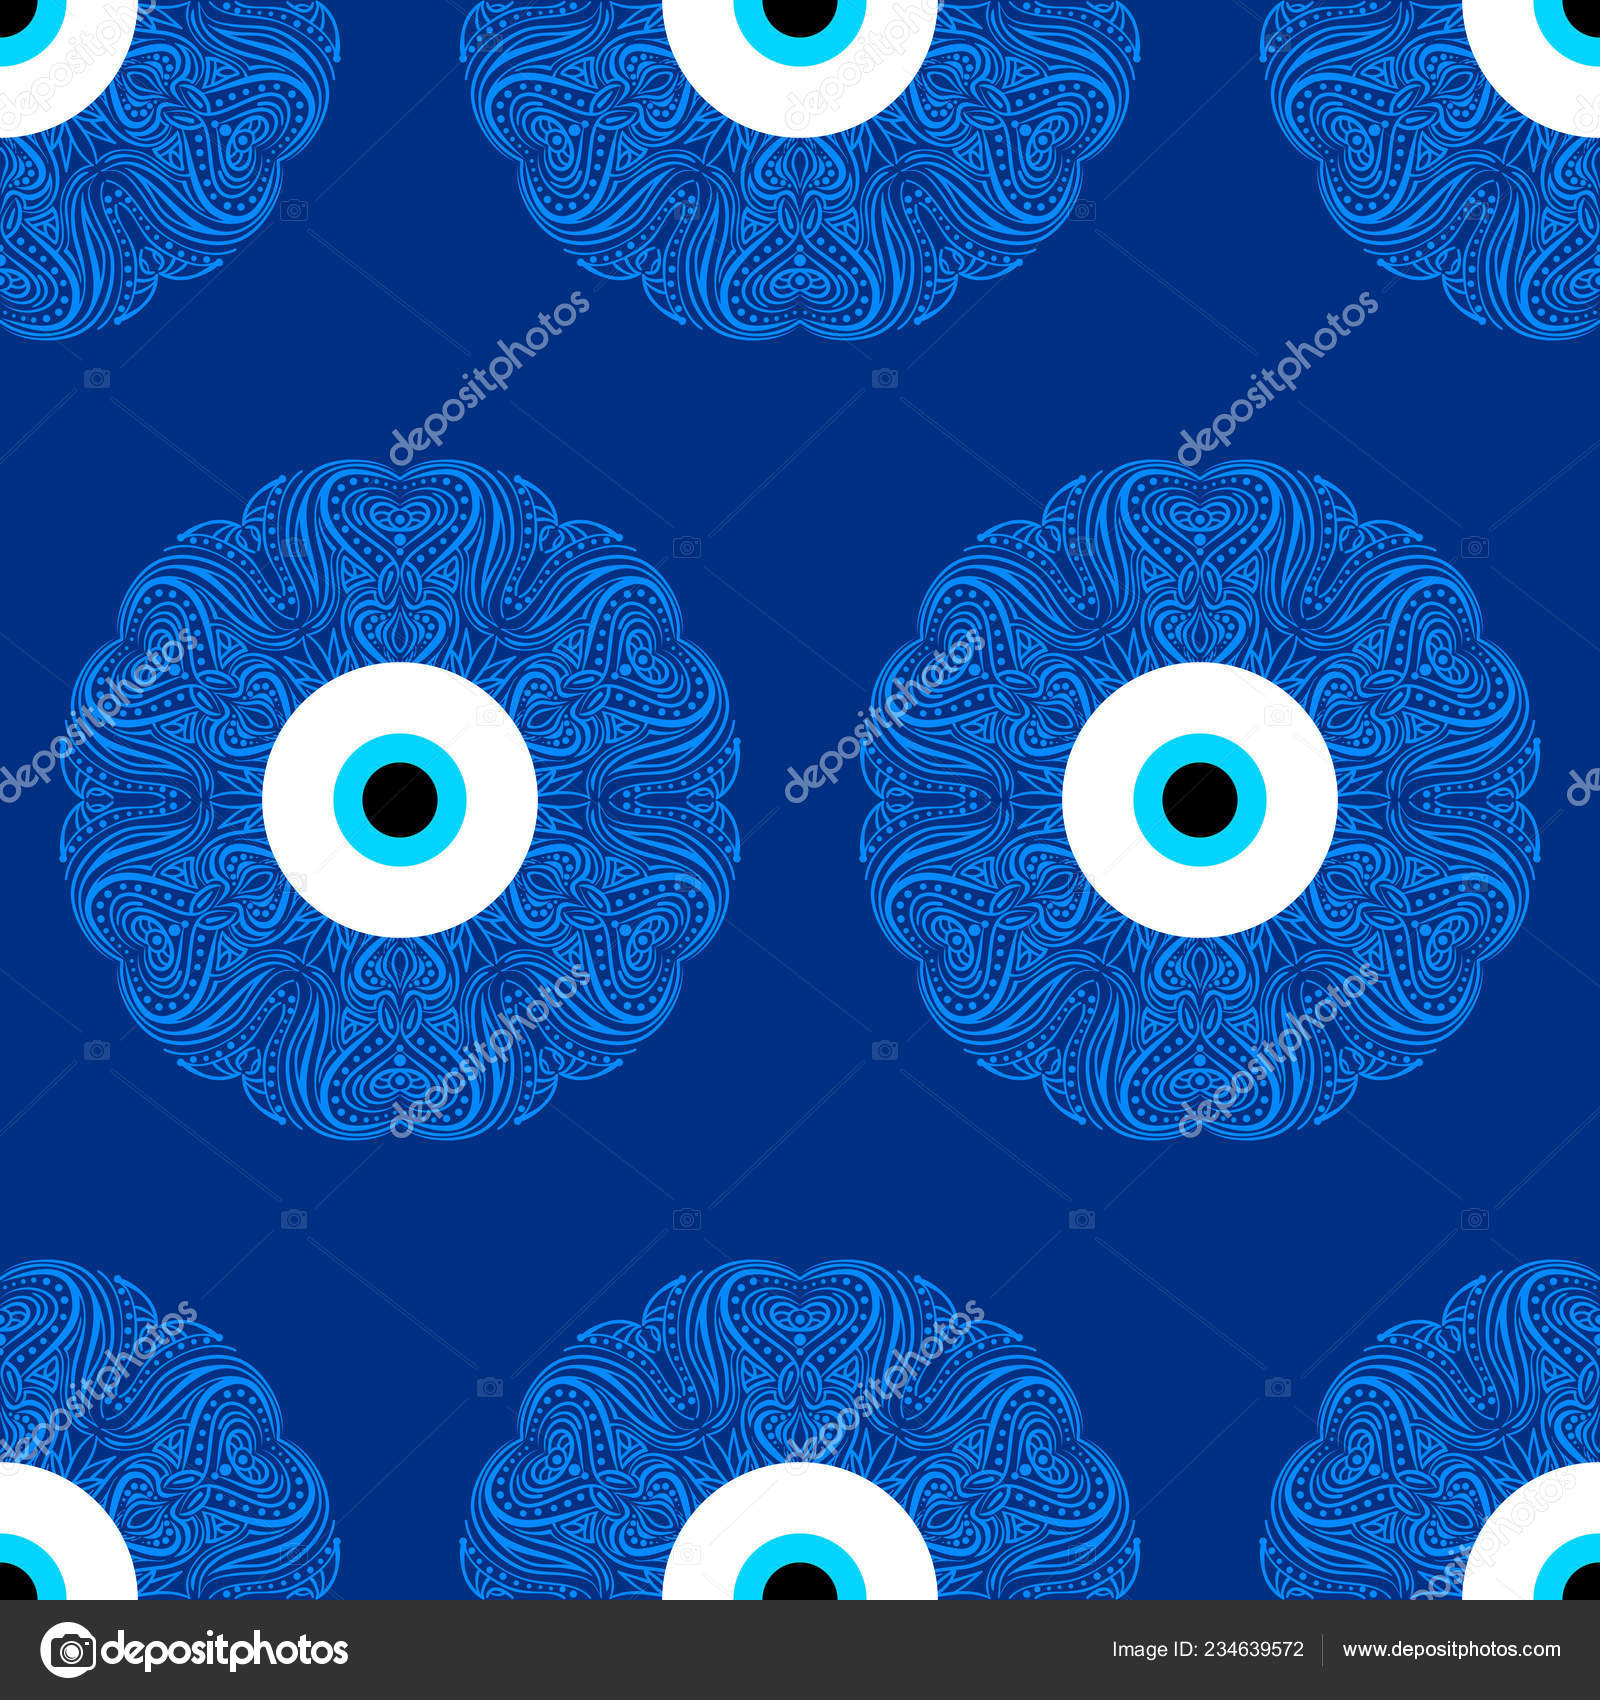 Seamless Pattern Turkish Evil Eye Bead Good Luck Turkish Fondos De Pantalla Para La Buena Suerte 1600x1700 Download Hd Wallpaper Wallpapertip